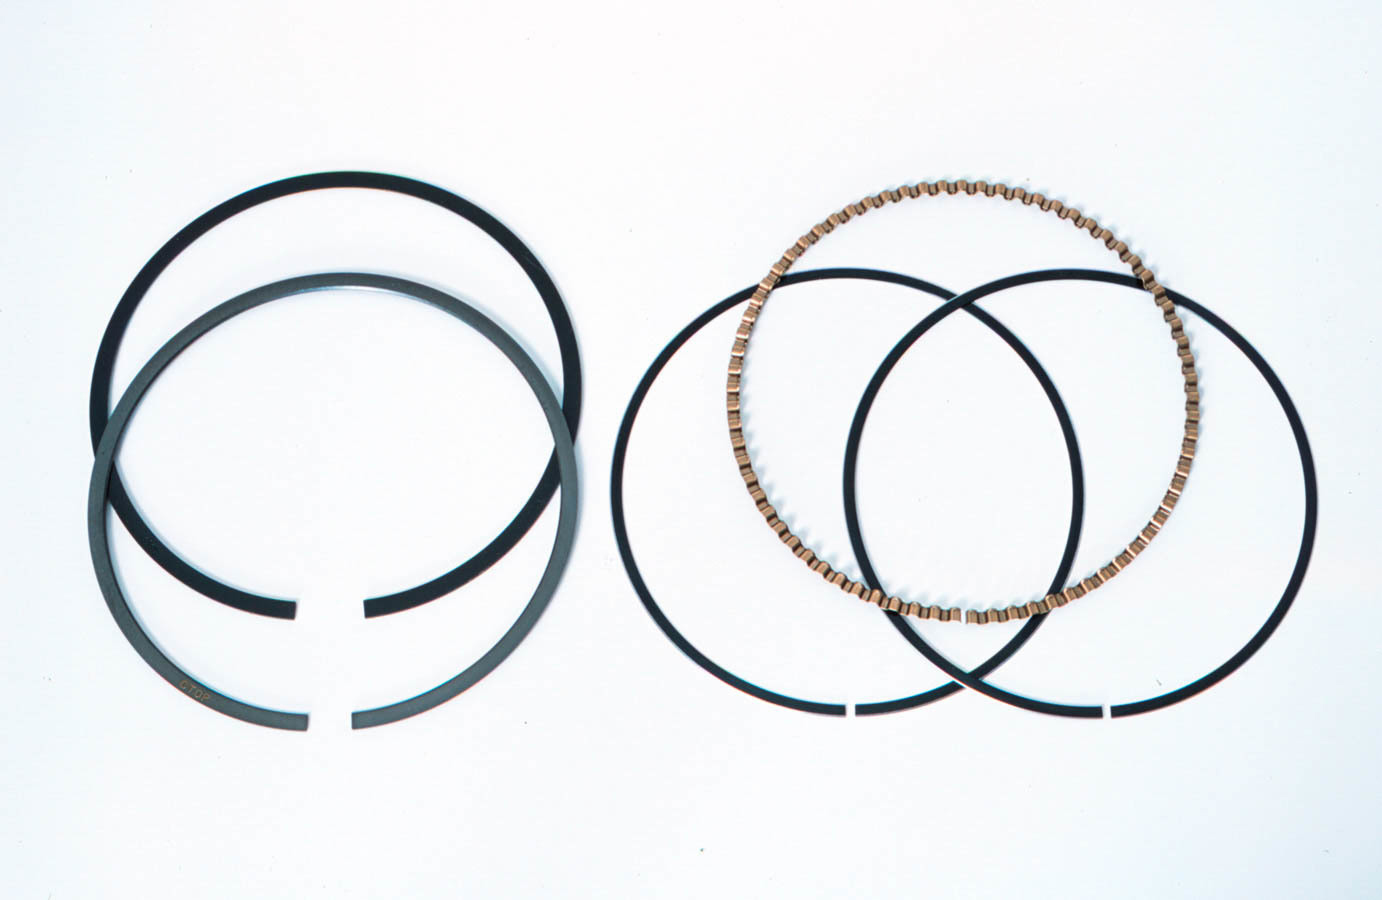 Piston Ring Set 4.145 1.0mm 1.0mm 2.0mm